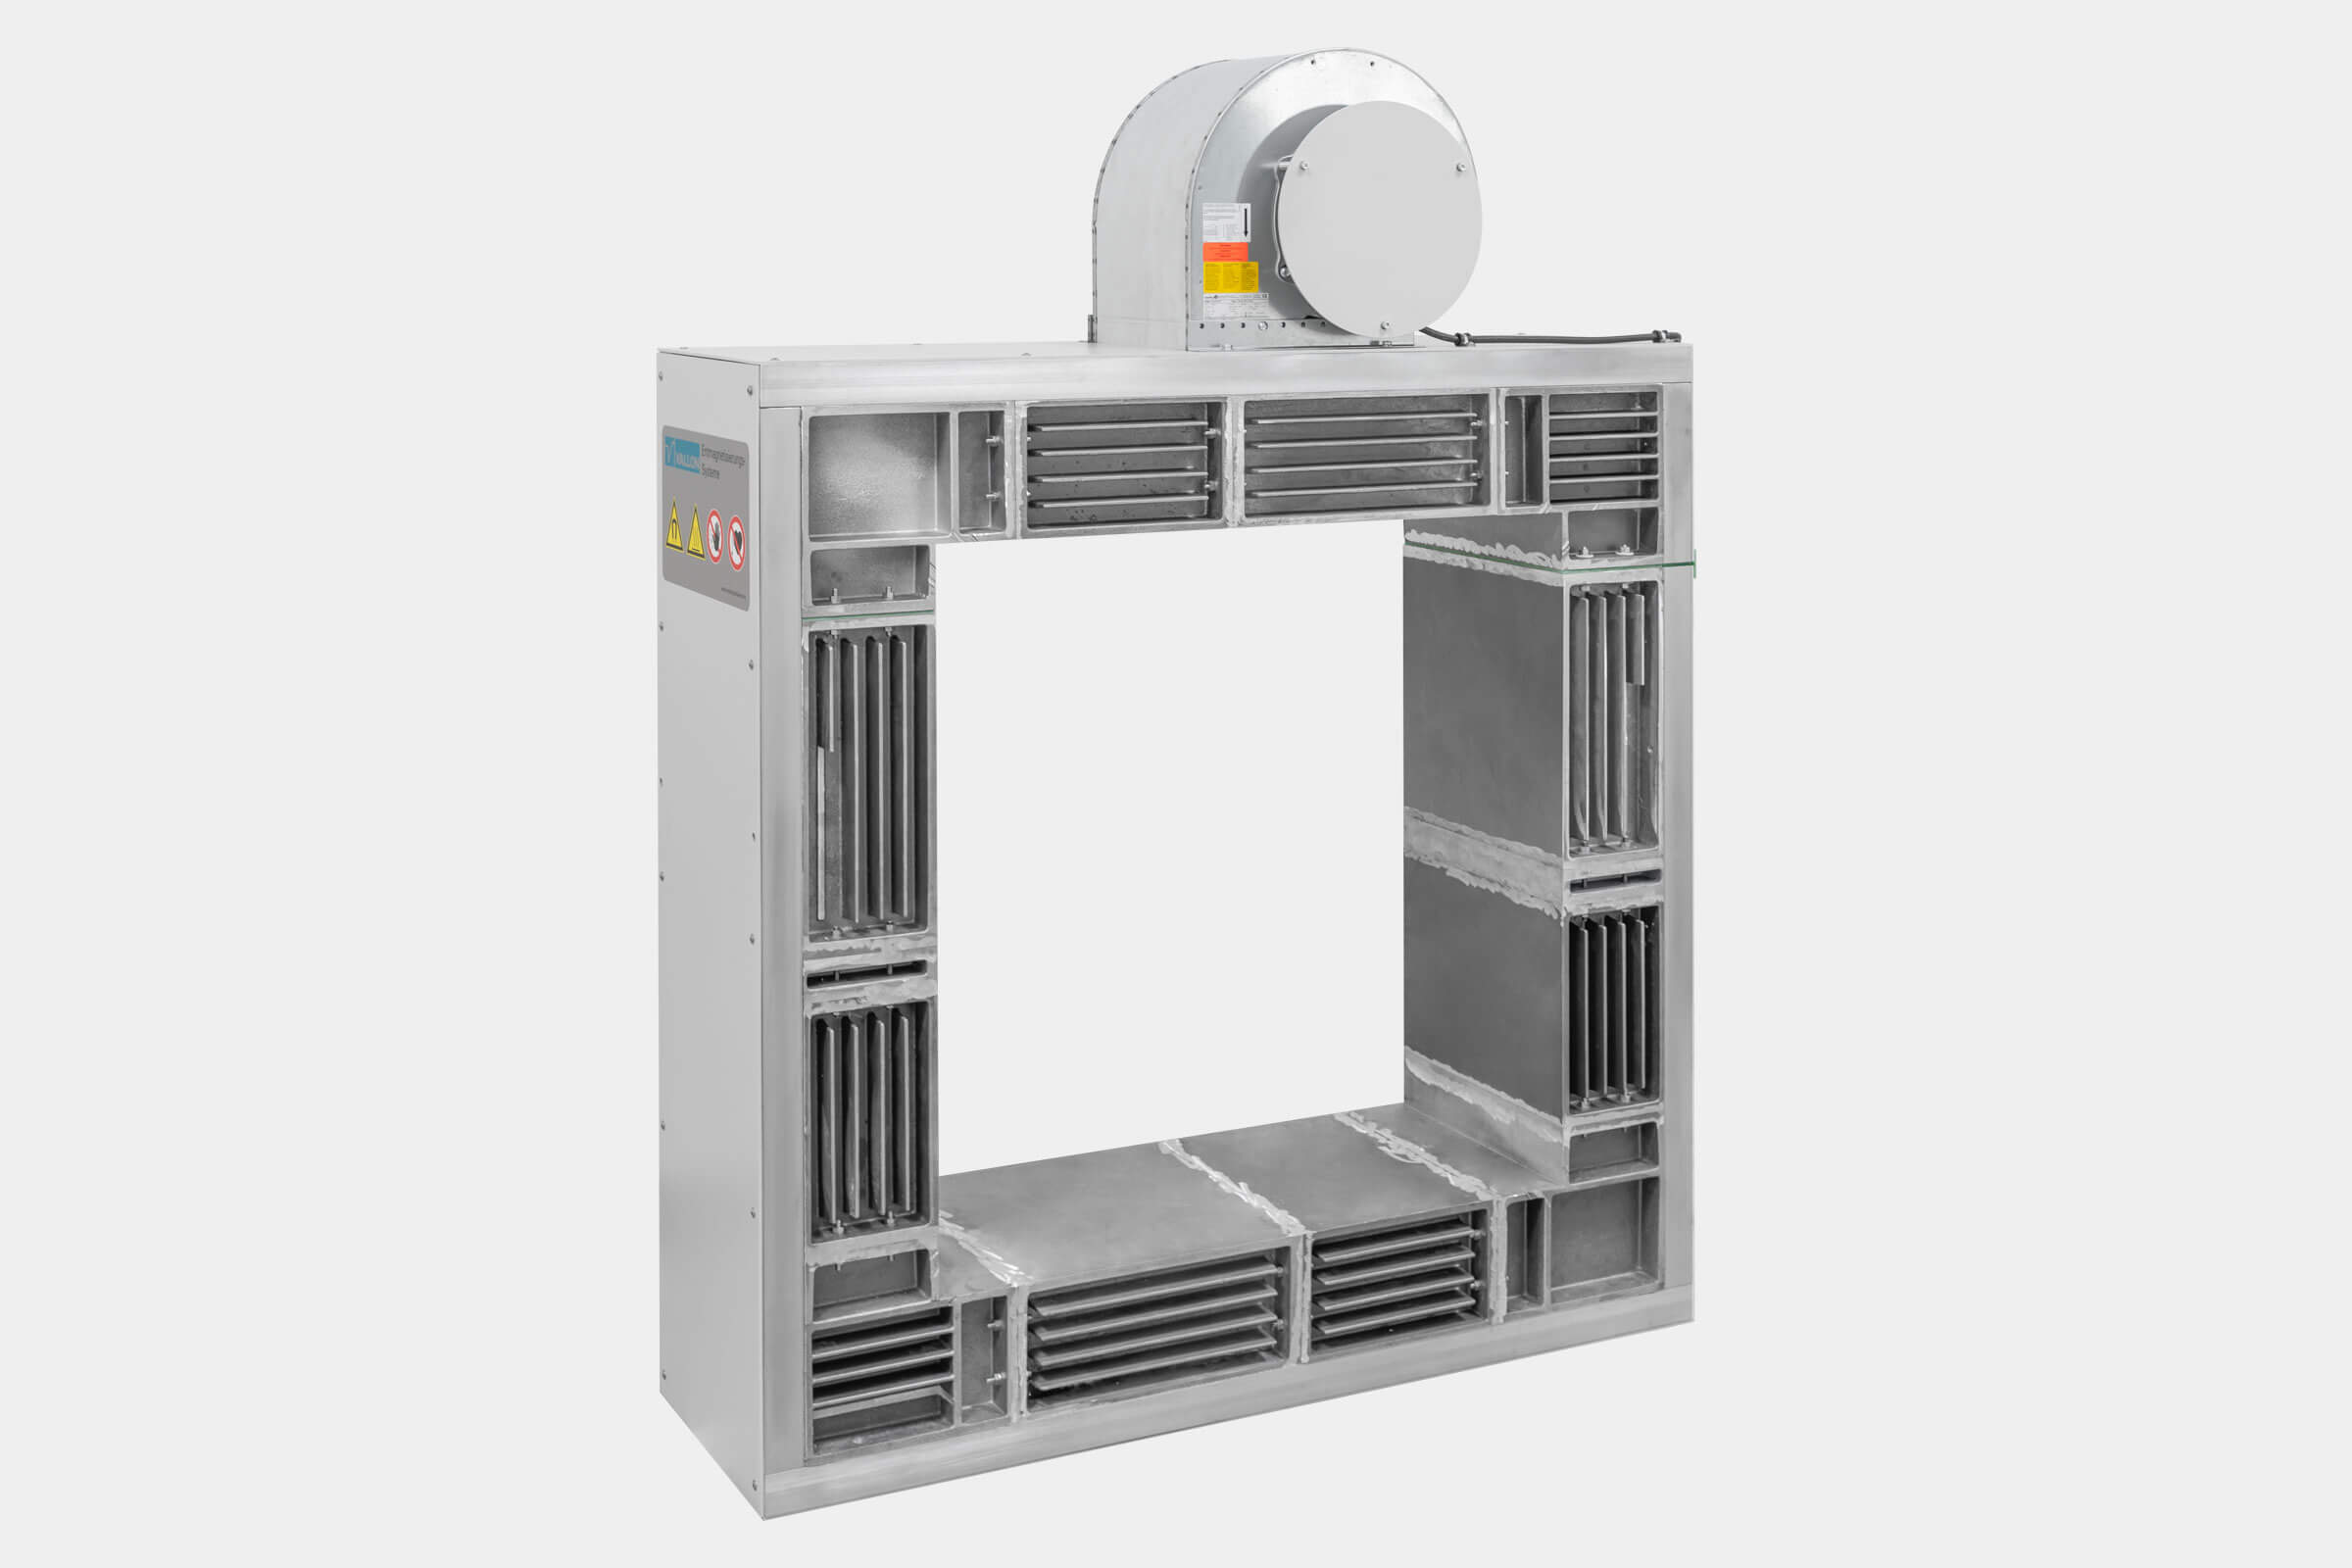 High-performance coil type A for low frequent degaussing of hard steels, massive work pieces, semi-finished goods and tubes bundles